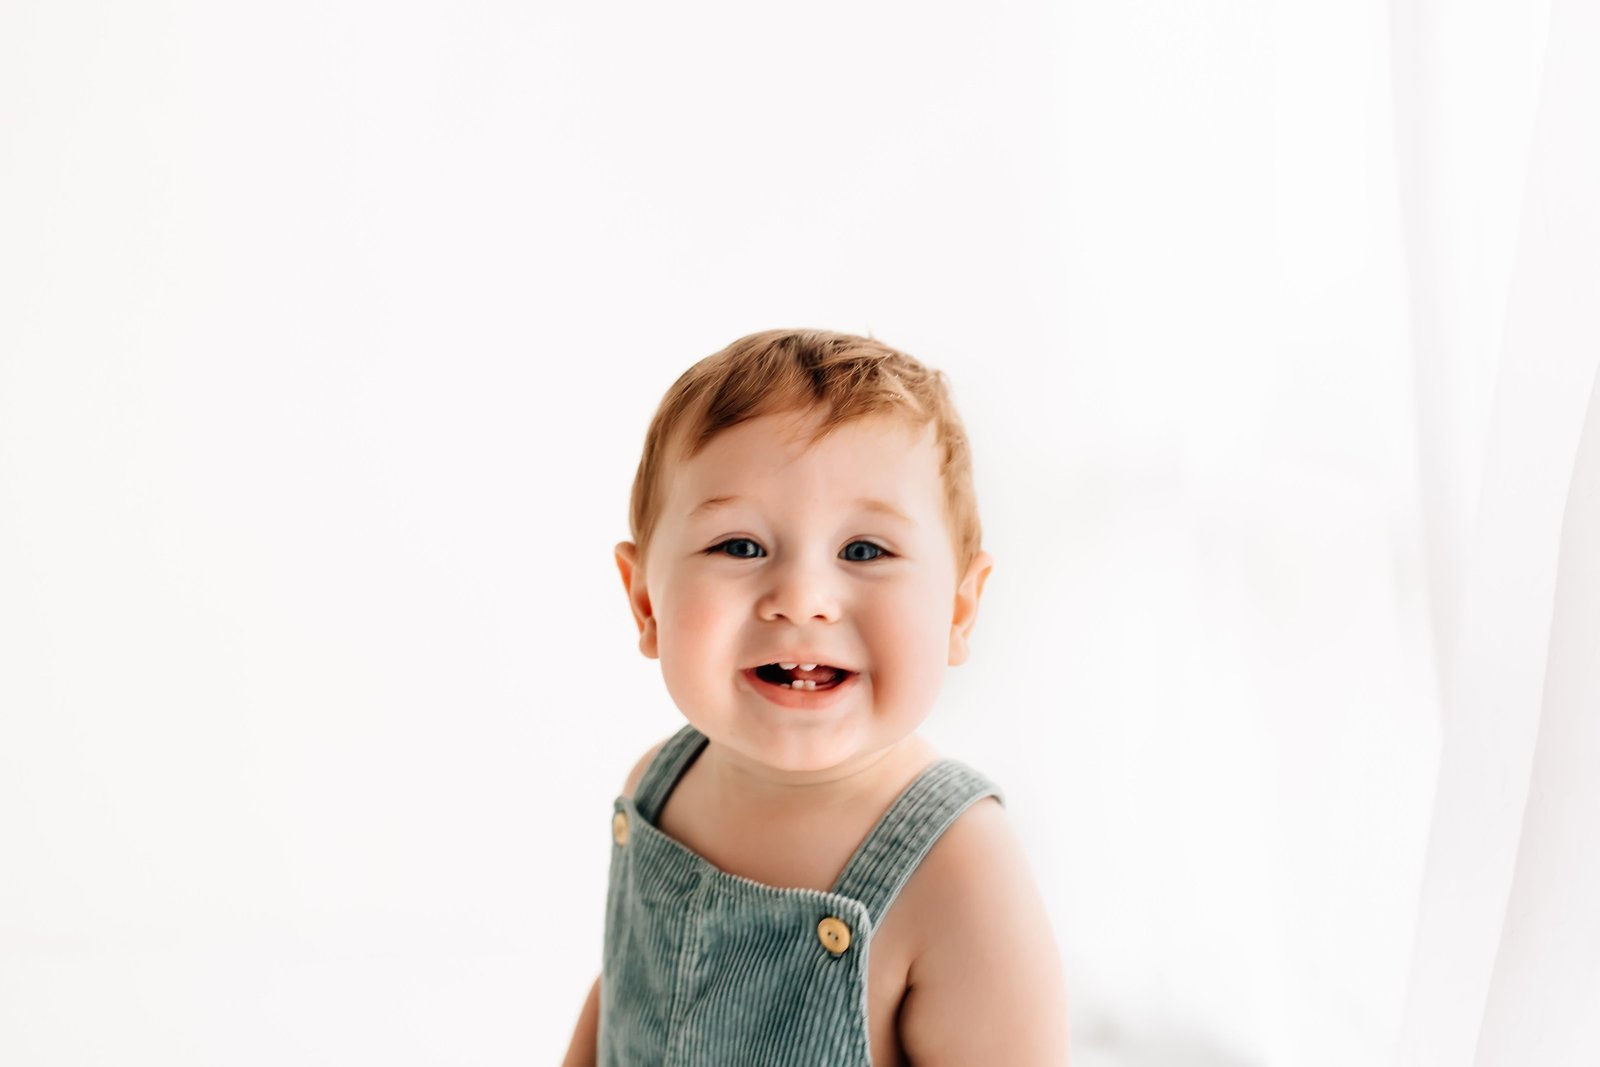 St_Louis_Baby_Photographer_Kelly_Laramore_Photography_87